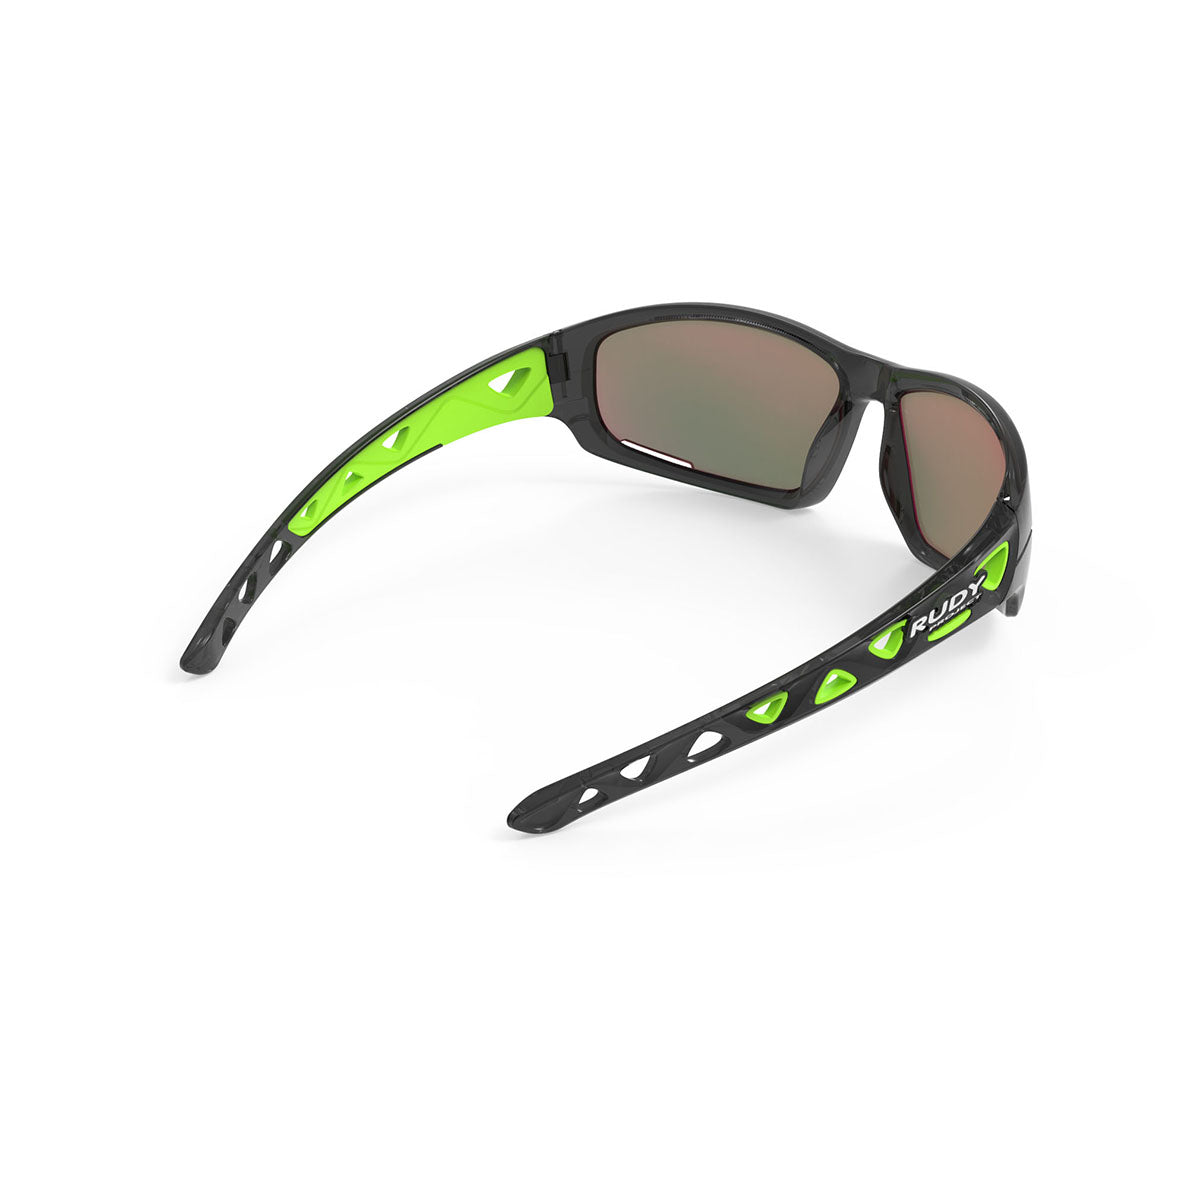 Rudy Project - Airgrip - frame color: Crystal Graphite - lens color: Multilaser Green - Pad Color: Green - photo angle: Top Back Angle Variant Hover Image